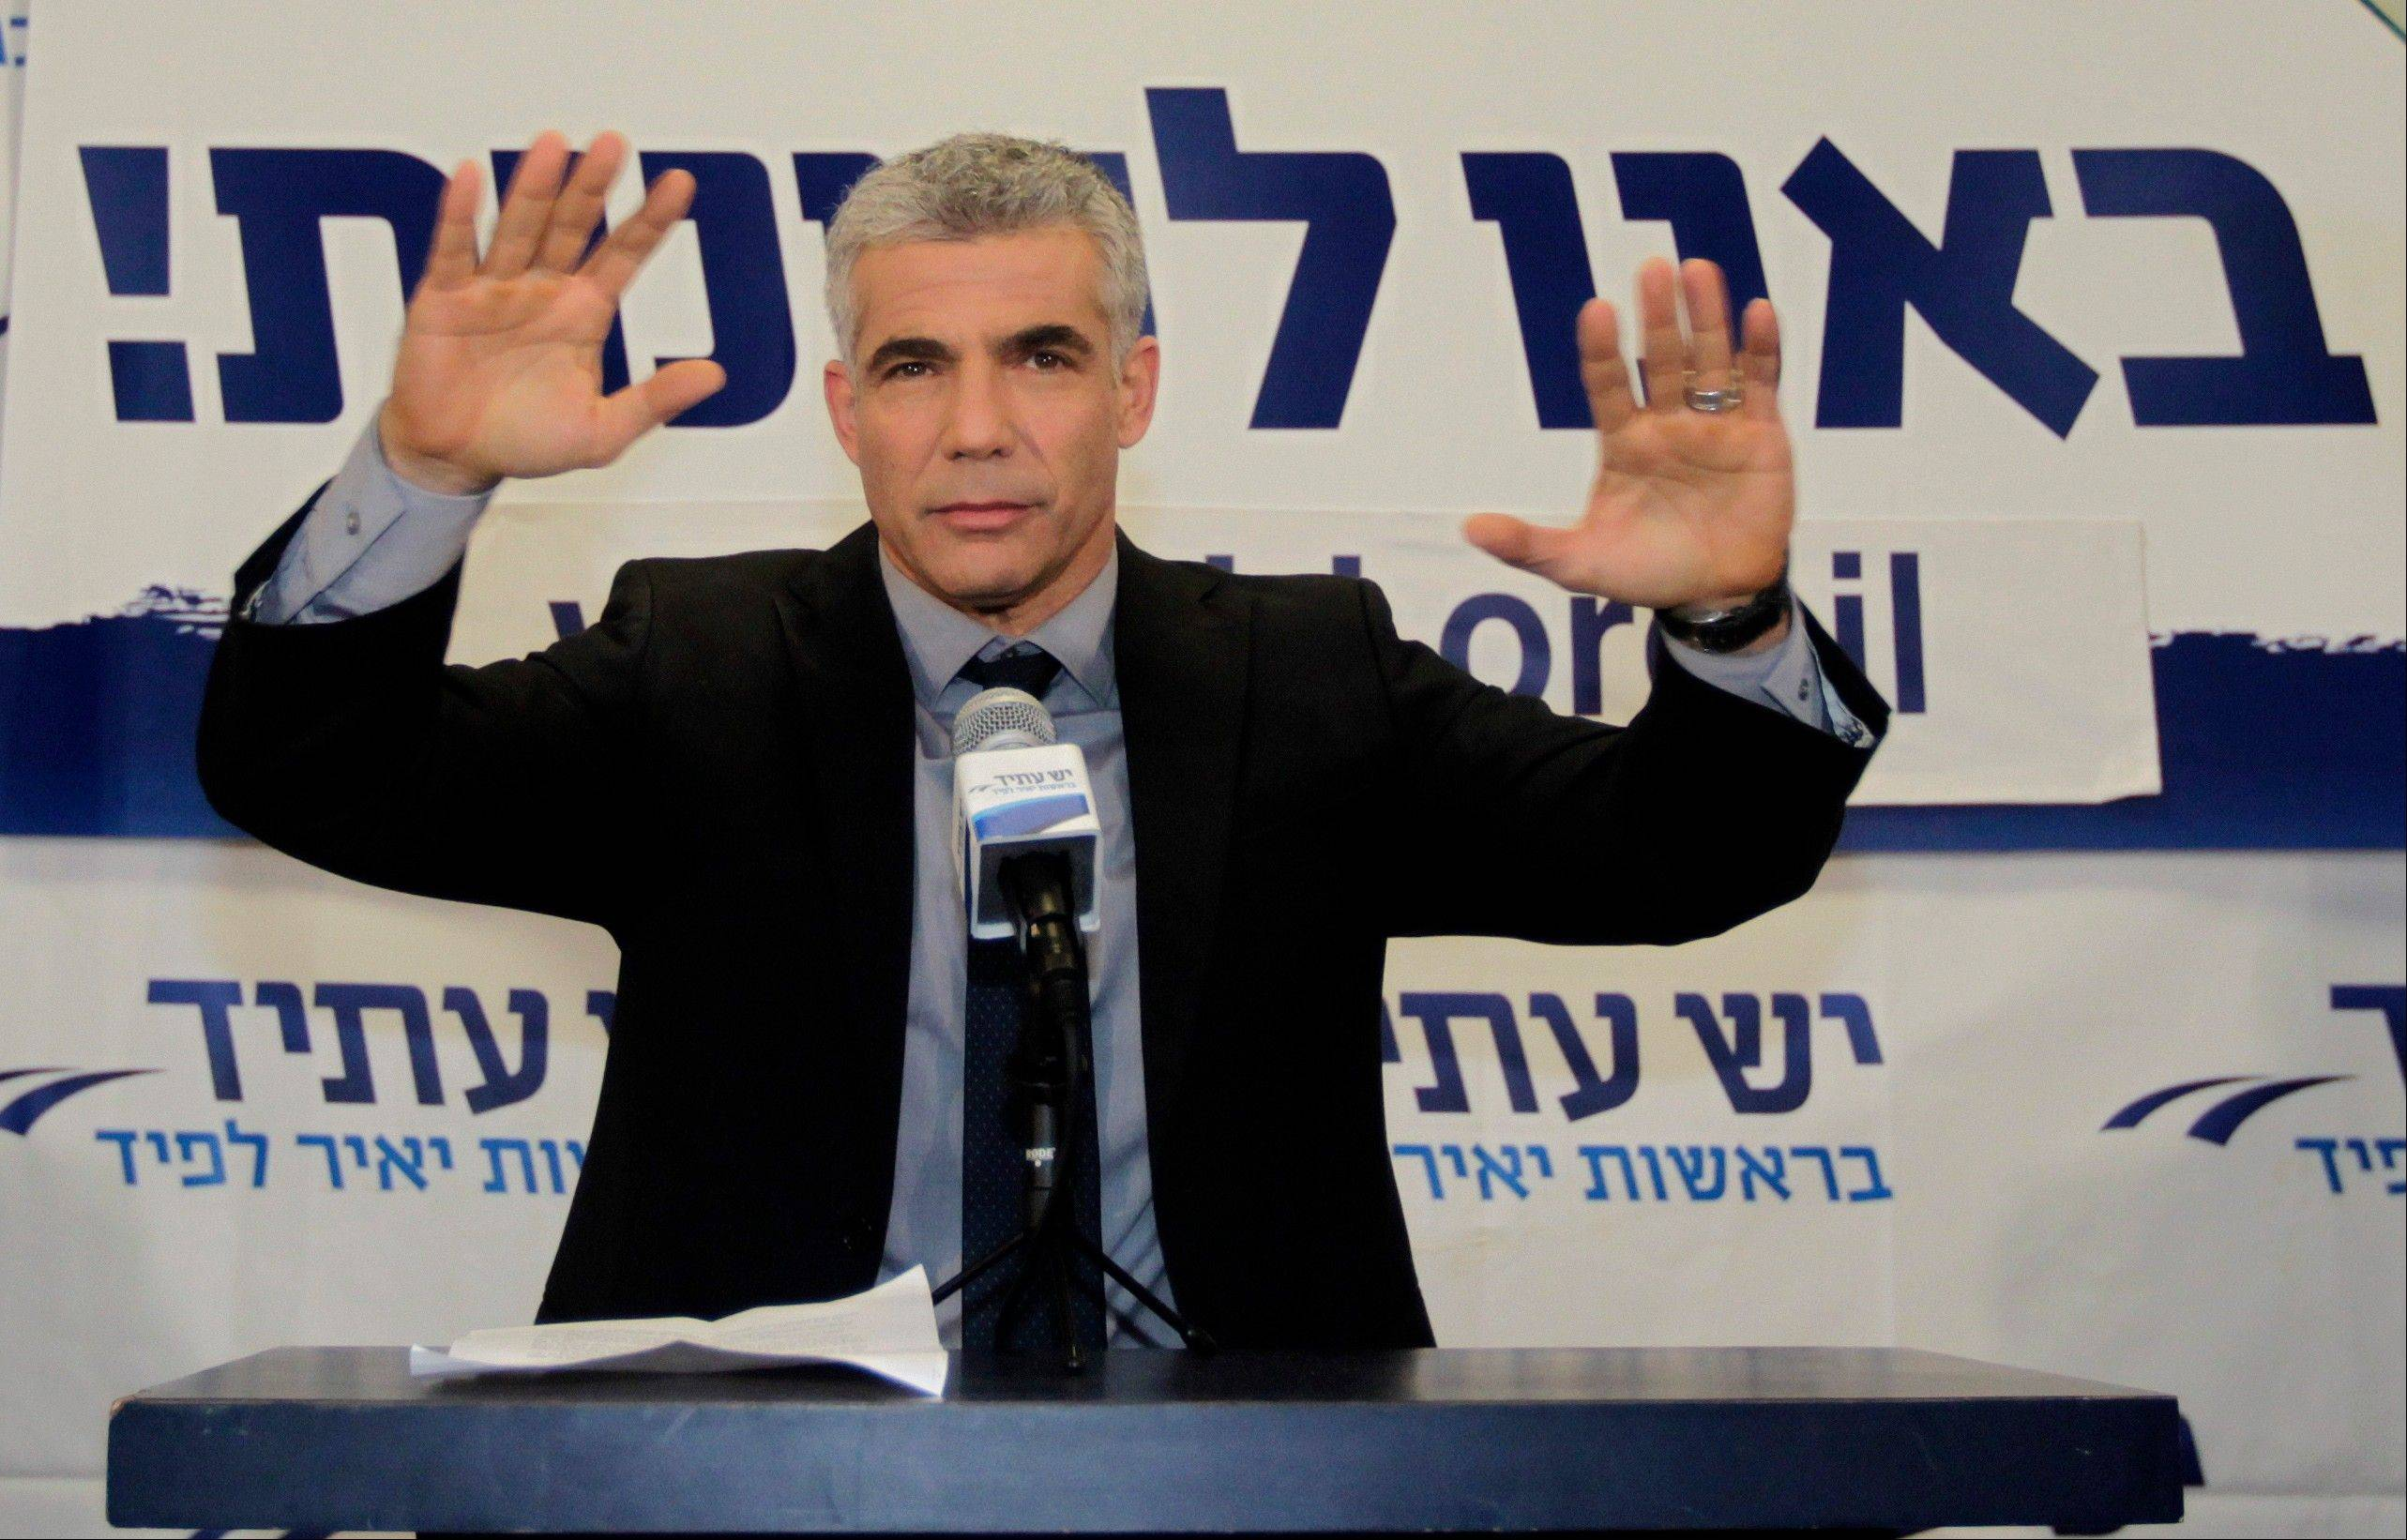 Israeli election casts ex-TV anchor as kingmaker